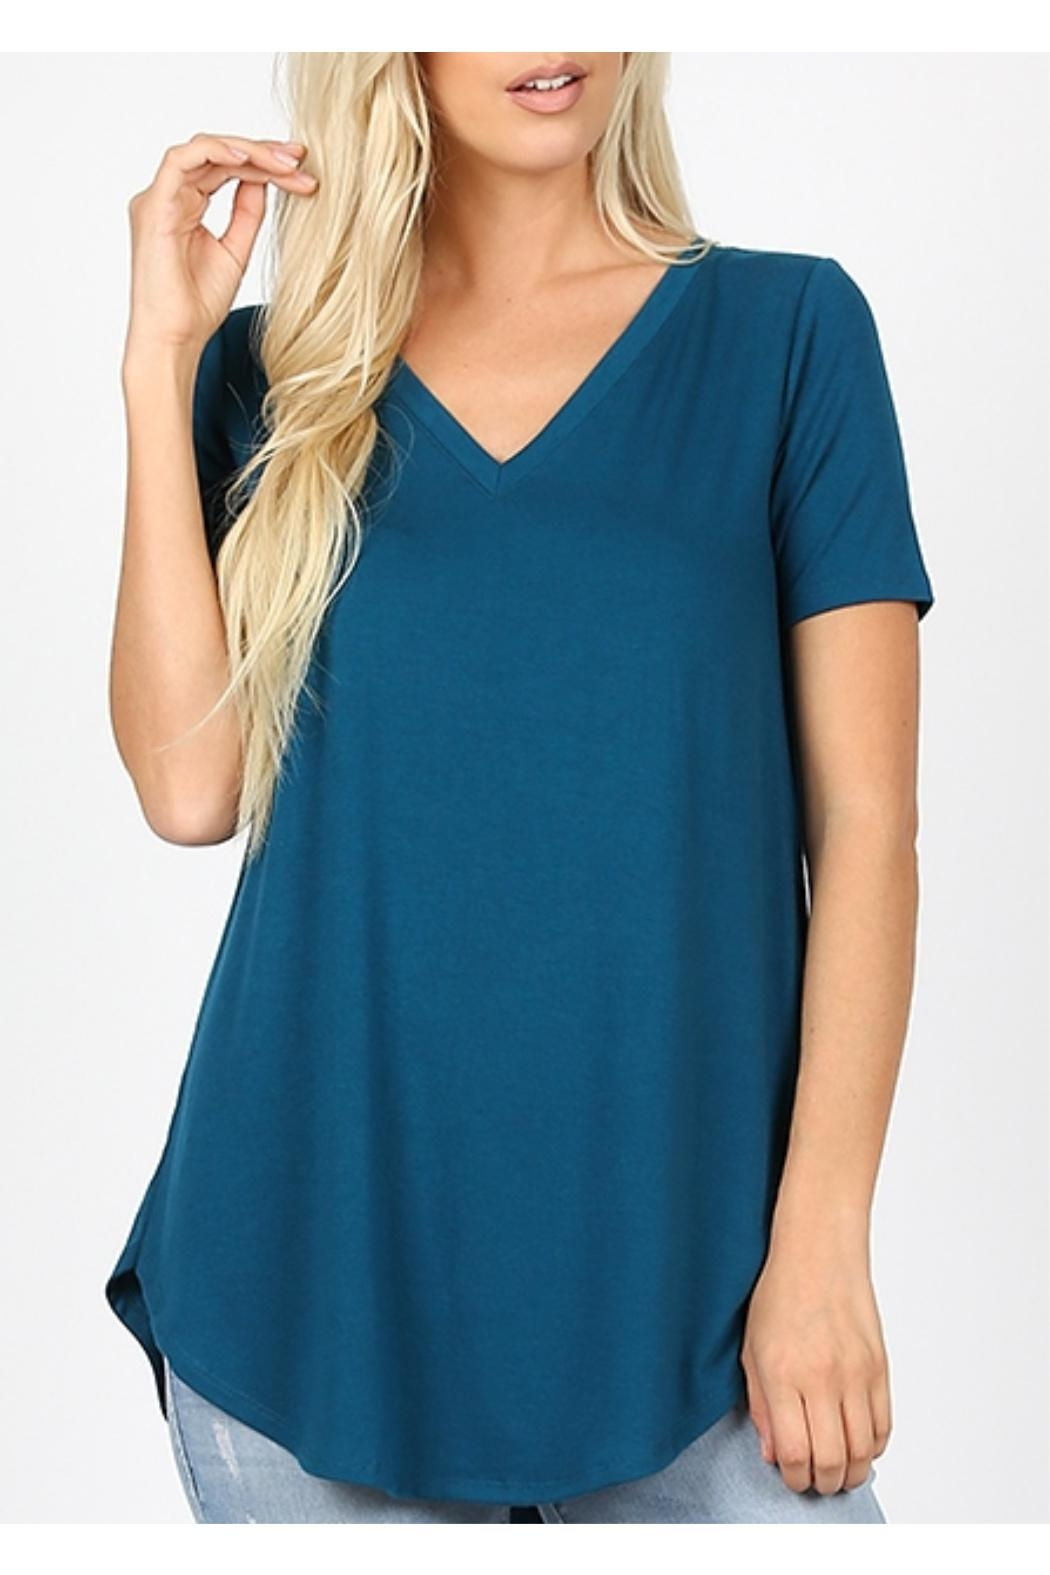 Zenana Outfitters V-Neck Tee - Teal - Main Image